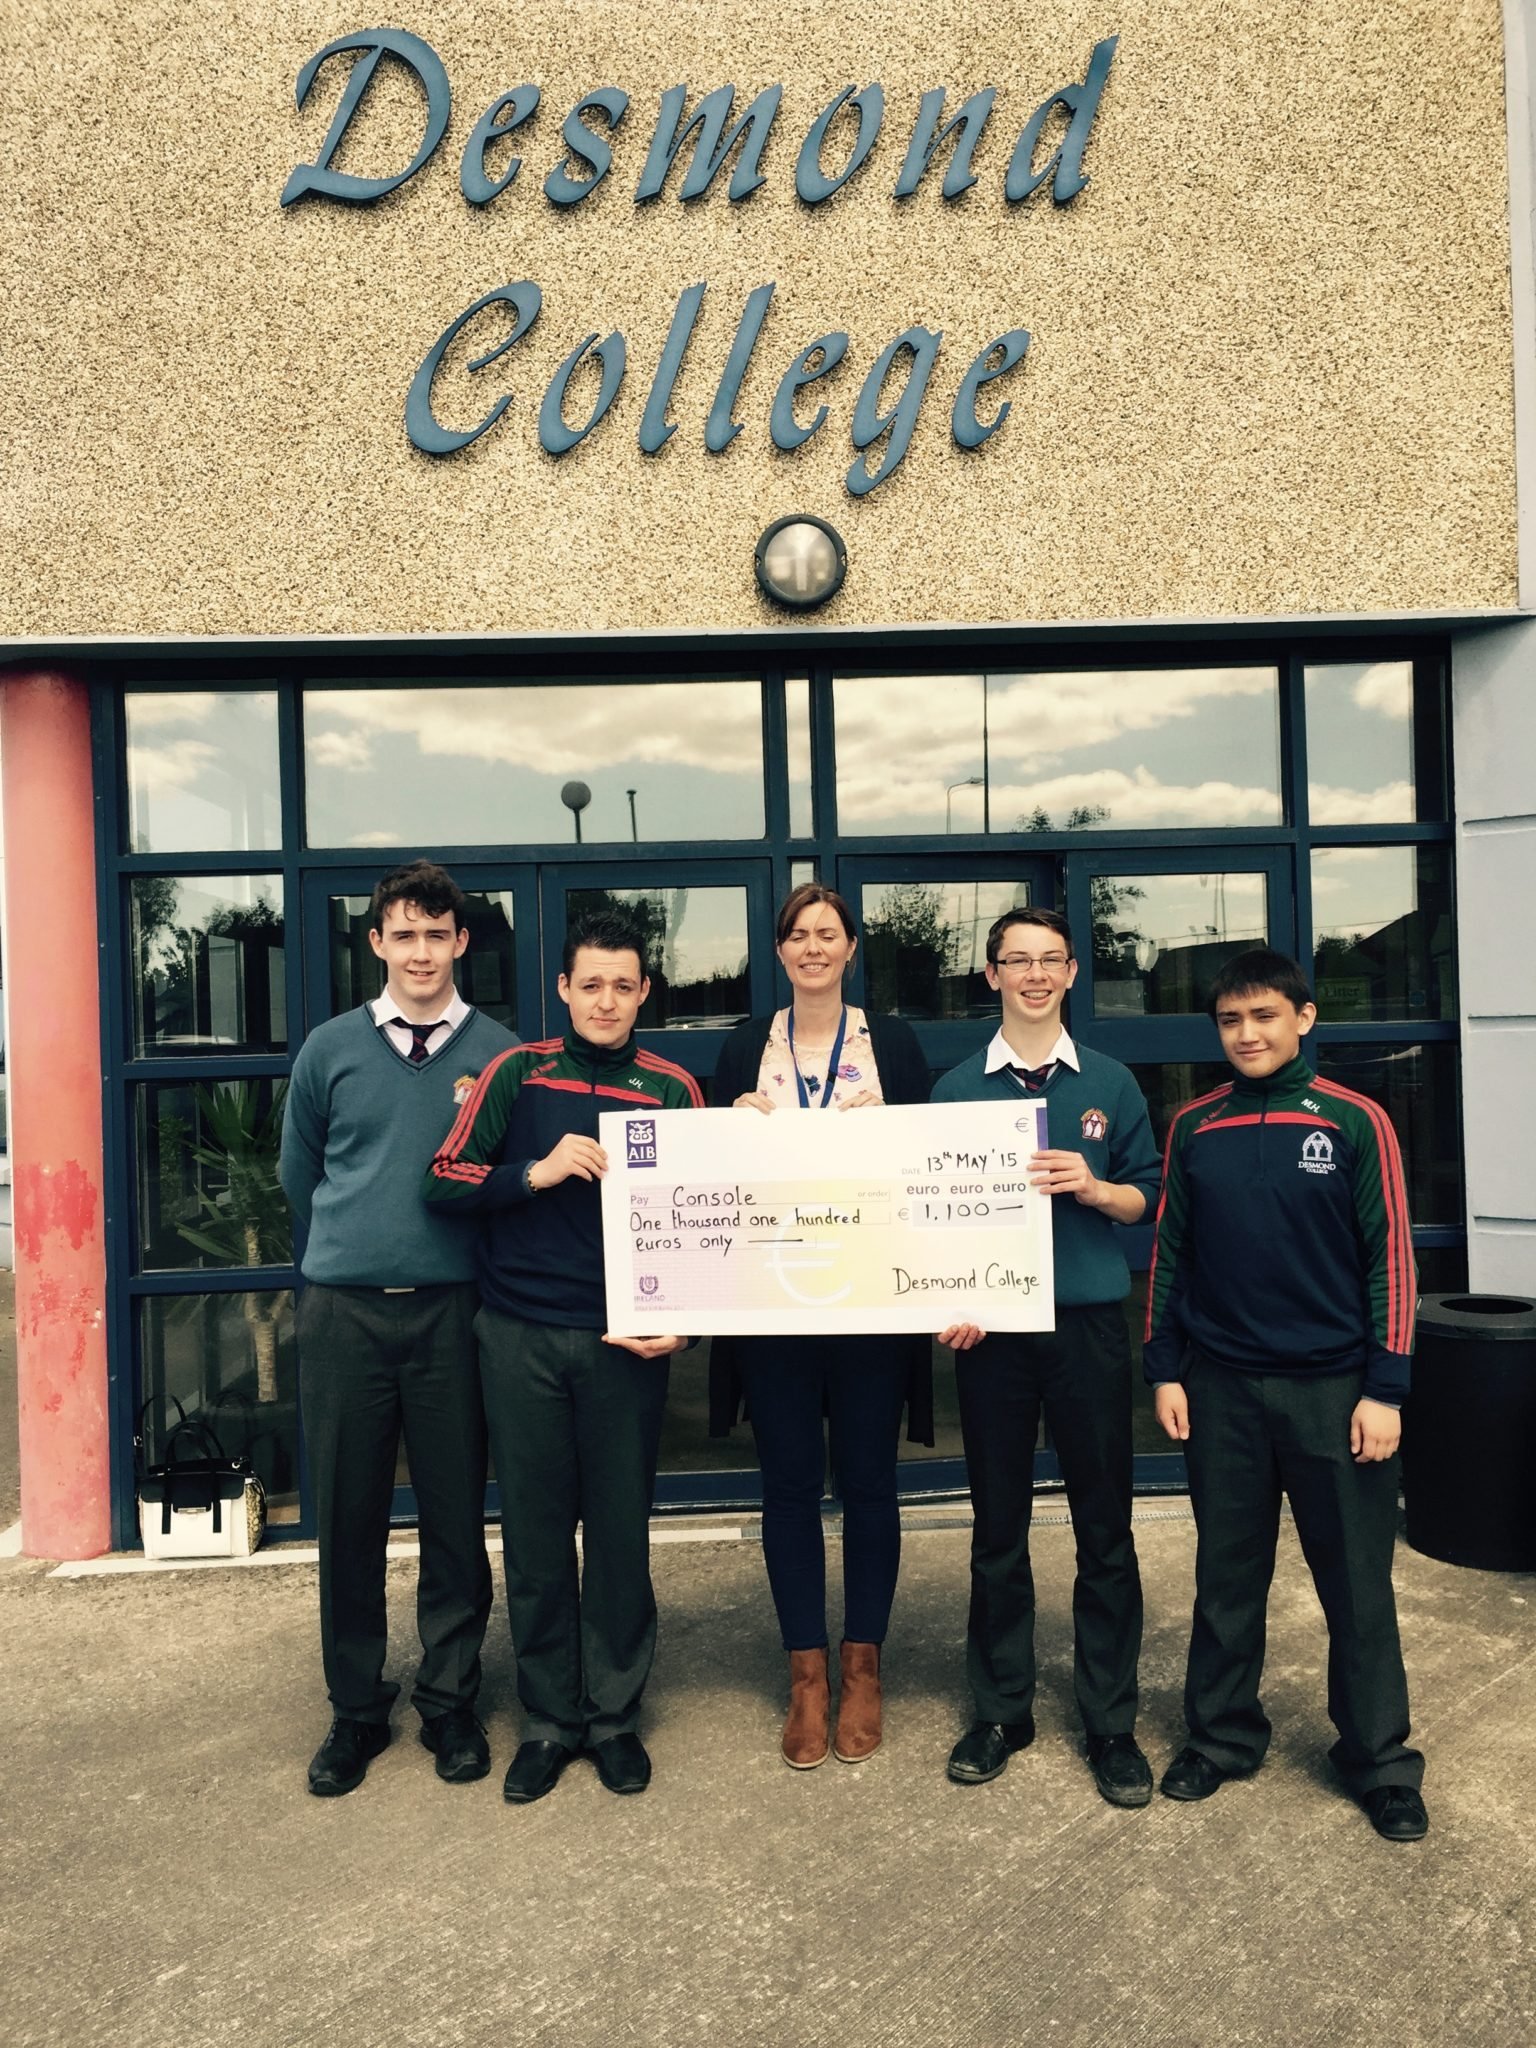 Pictured: Desmond College Transition Year Students Liam Dowling, Seán Ó Fiaich, Cillian McMahon and Matthew Halley. with Emer O'Neill (Console Limerick Centre Manager)